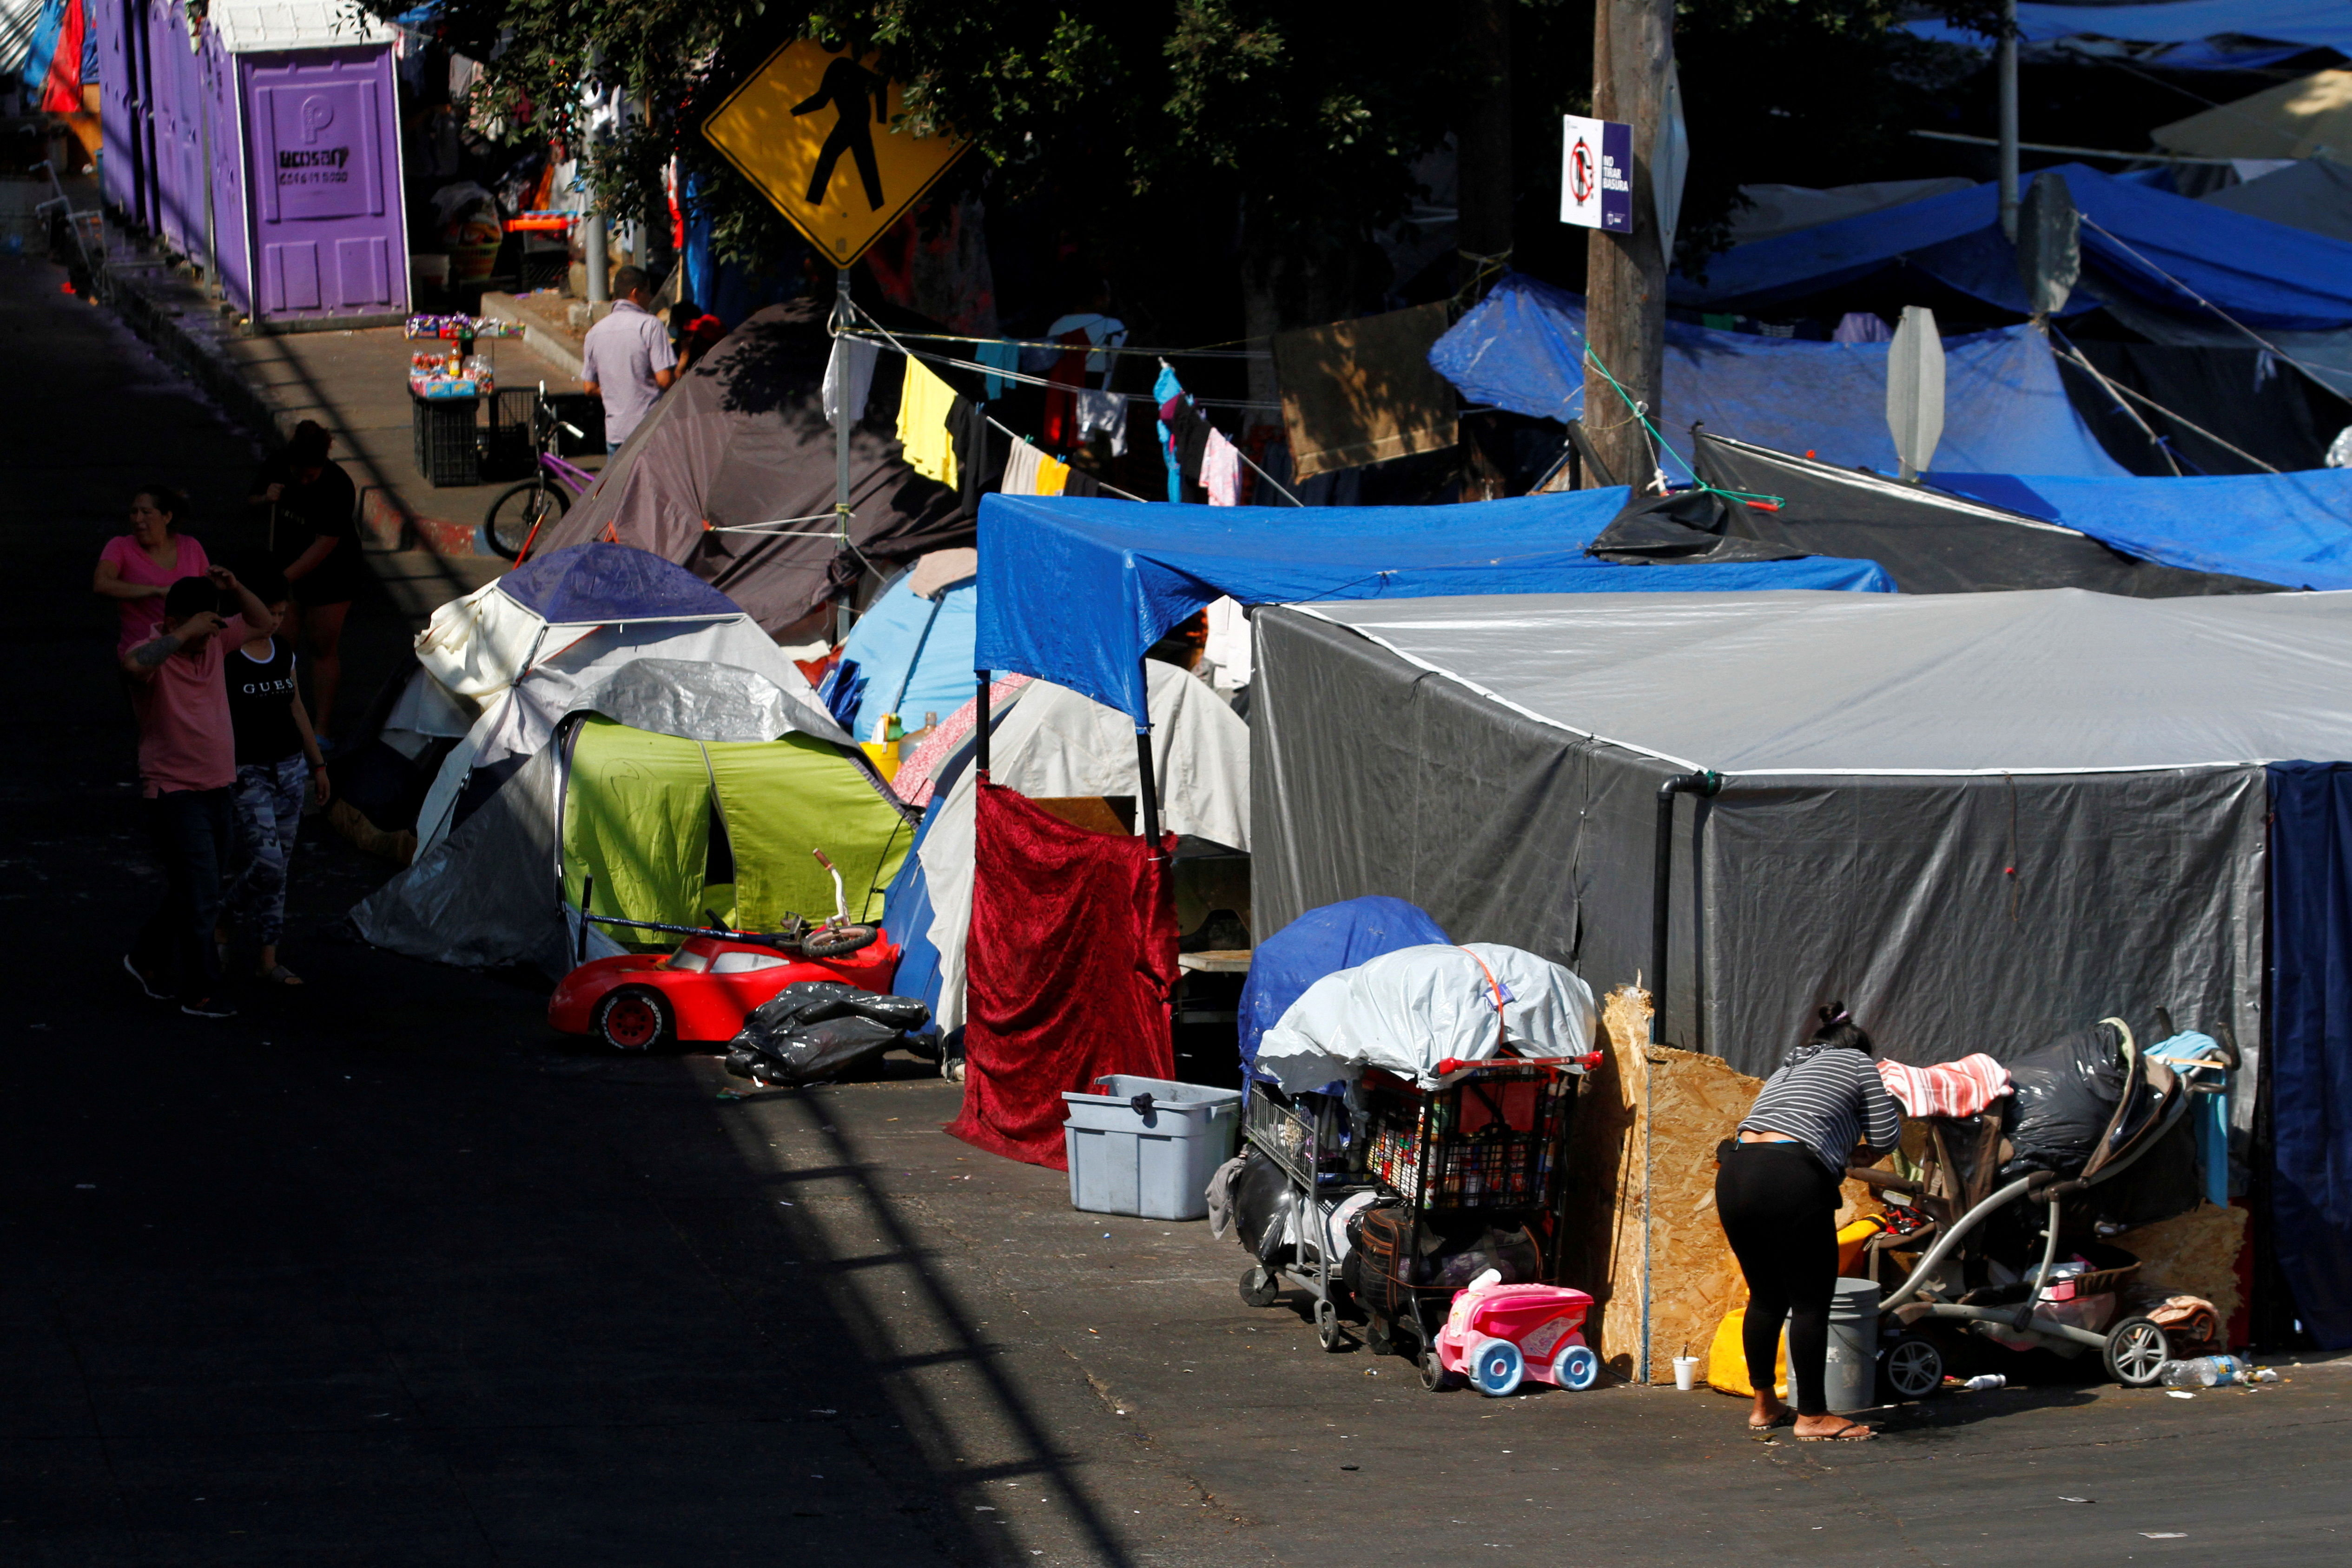 Asylum-seeking migrants are pictured at a makeshift camp after the U.S. Supreme Court ordered to uphold an immigration policy implemented under former President Donald Trump that forced thousands of asylum seekers to stay in Mexico to await U.S. hearings, at El Chaparral crossing port with the U.S., in Tijuana, Mexico August 25, 2021. REUTERS/Jorge Duenes/